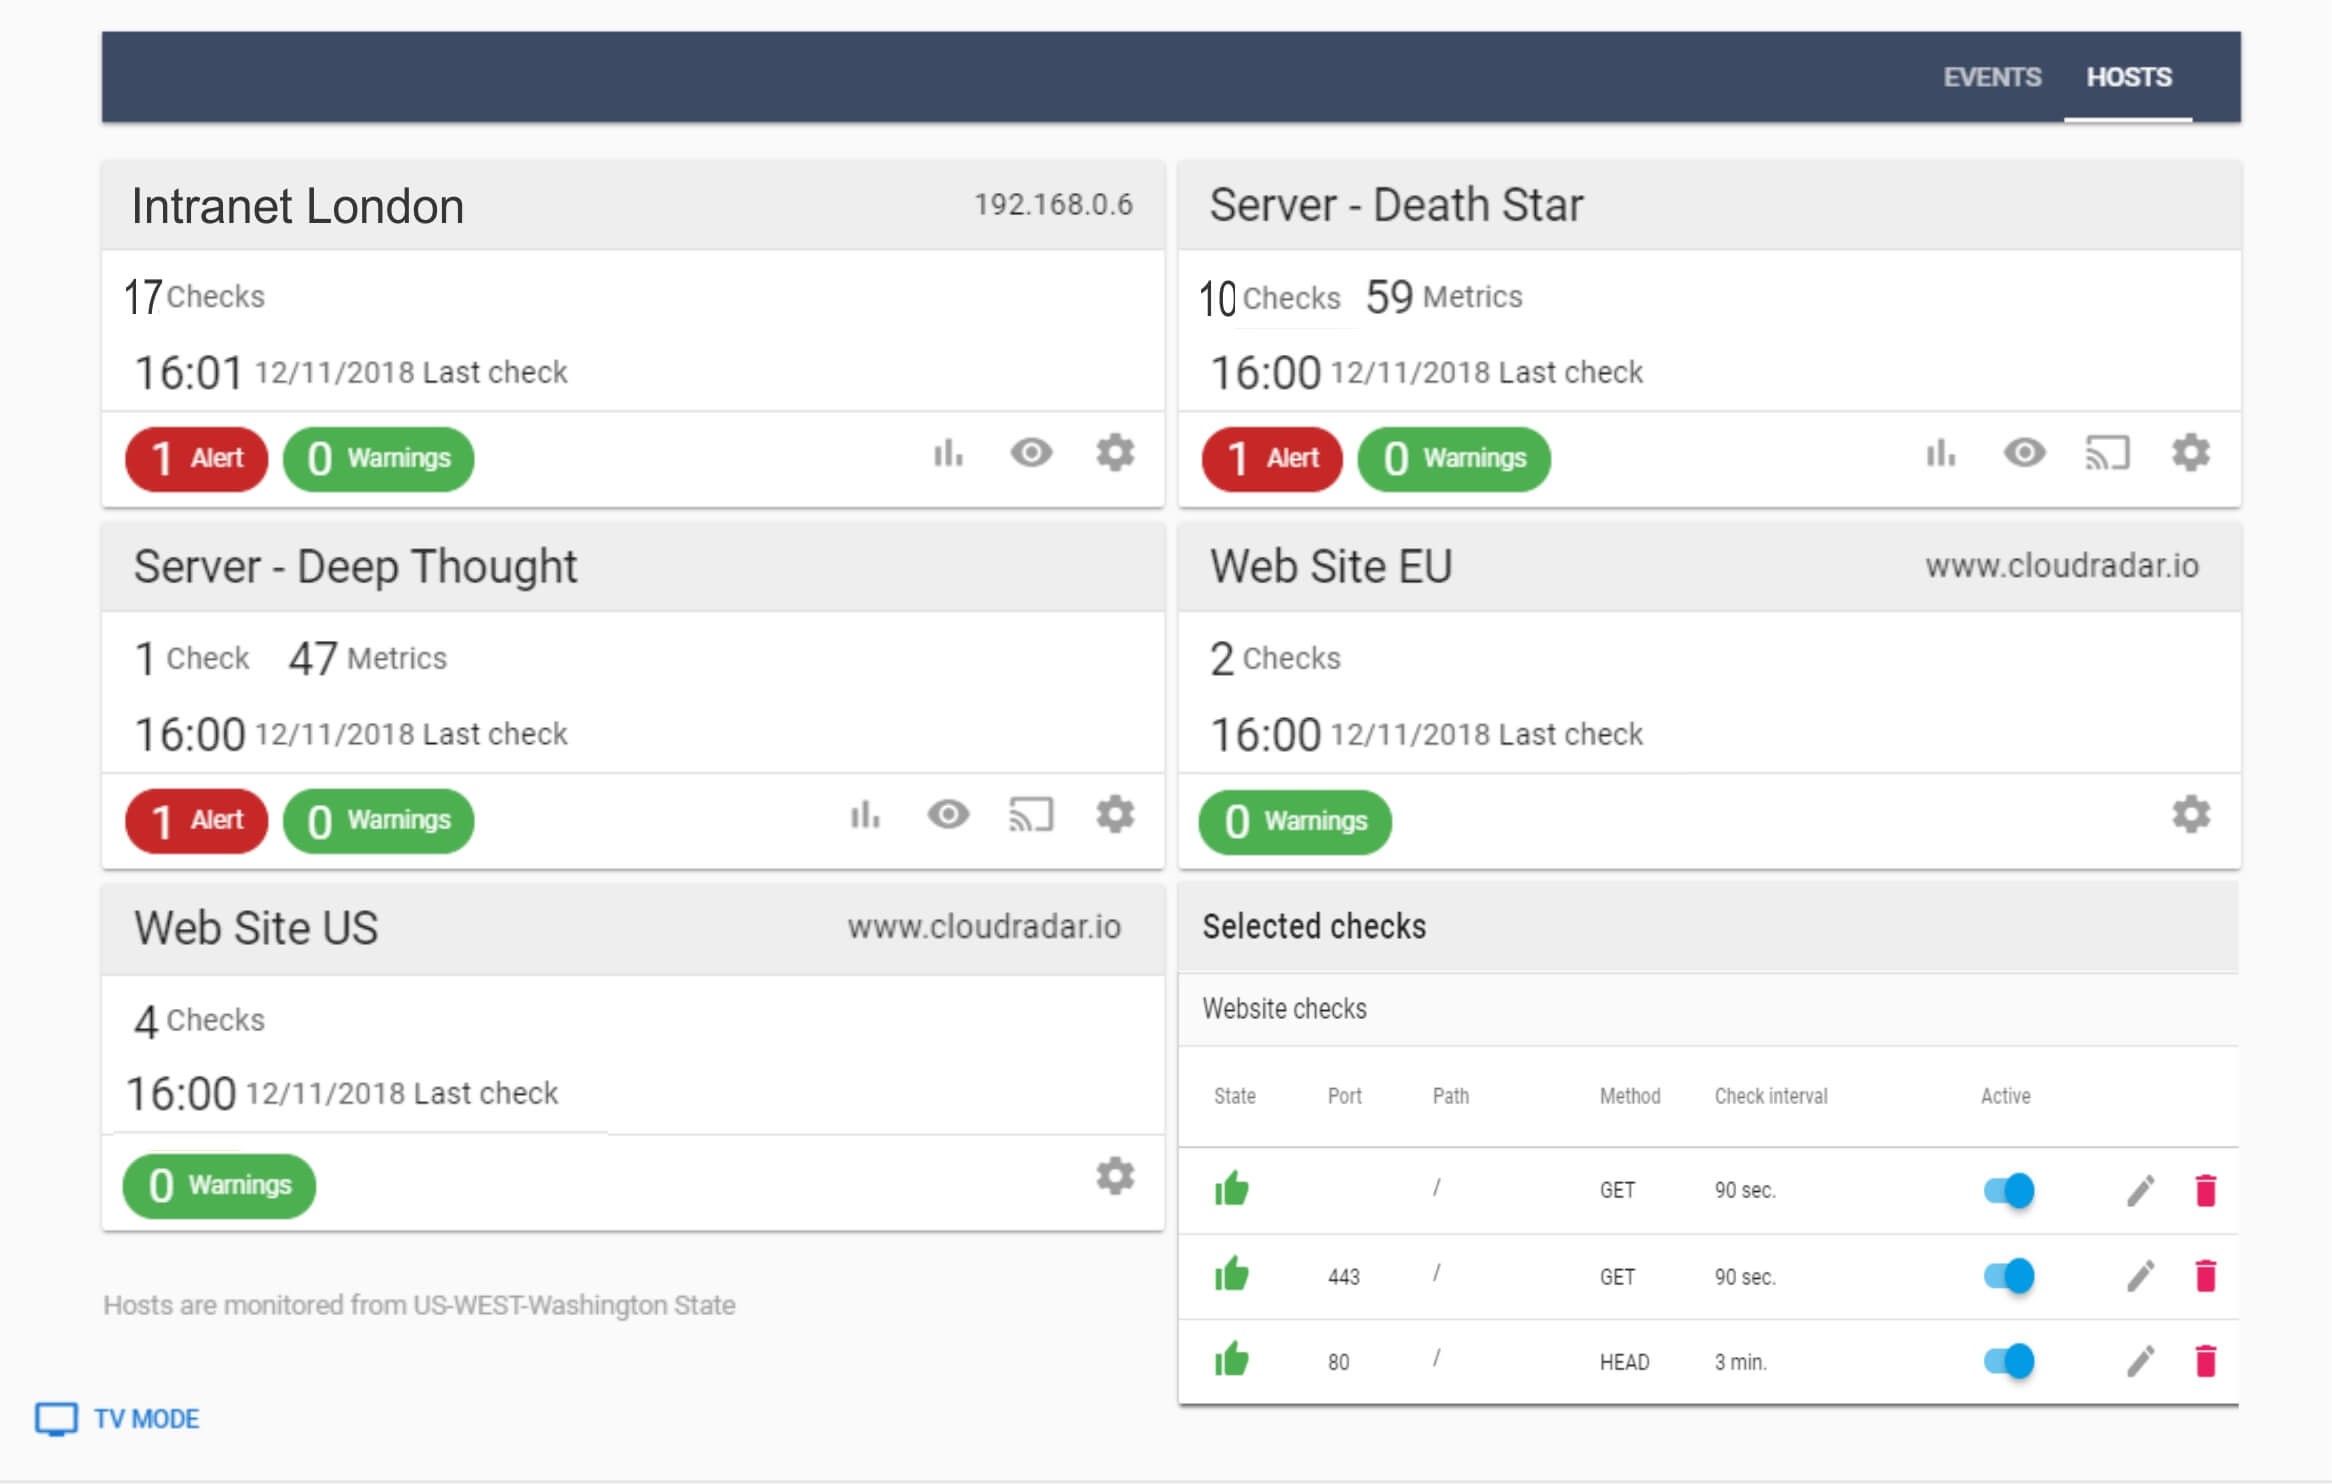 Availability monitoring via one unified dashboard